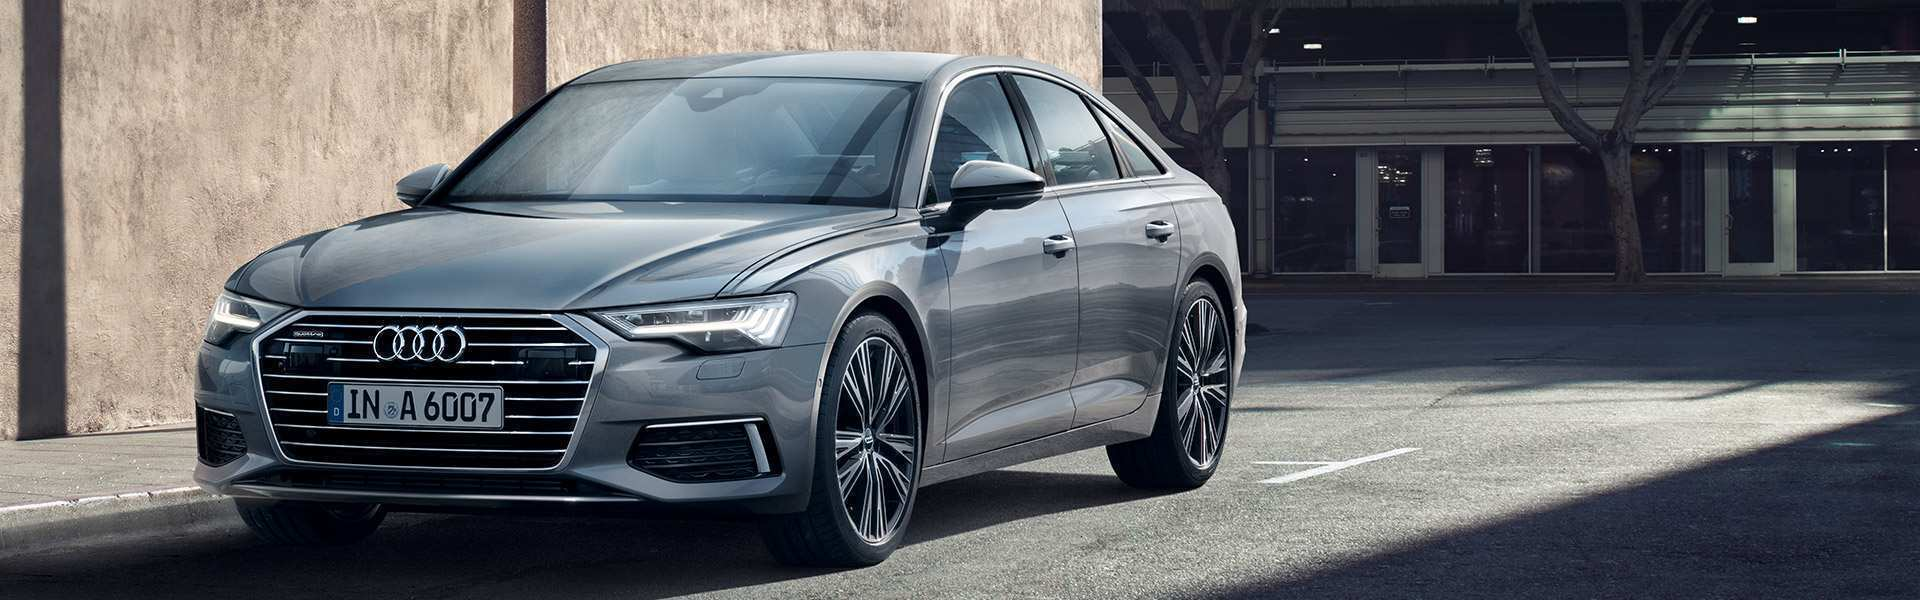 48 Best 2020 The Audi A6 Review